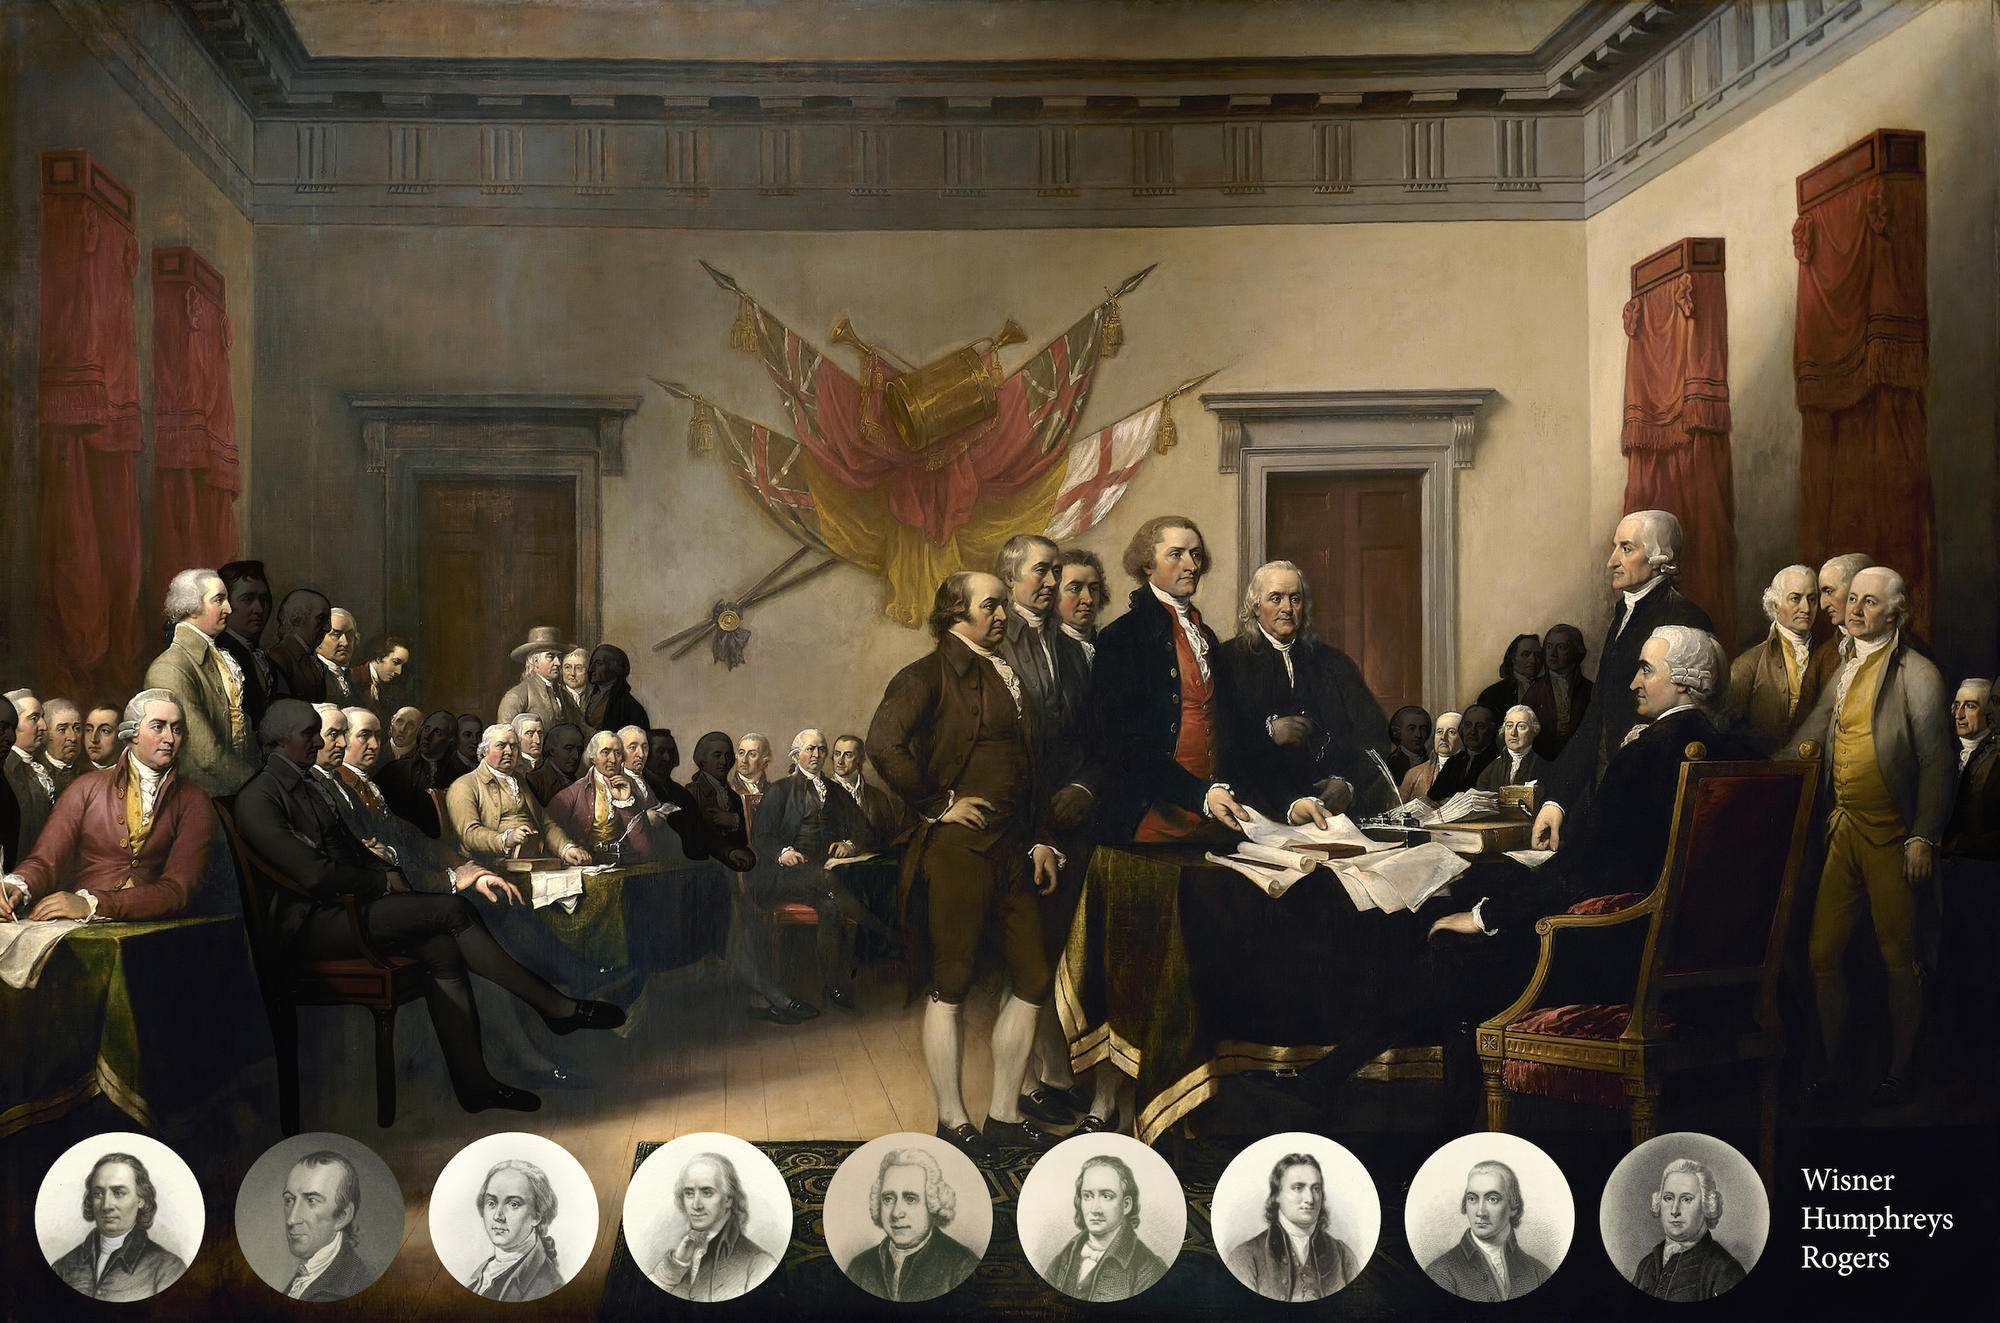 Trumbull's Declaration of Independence, Historically Accurate Version